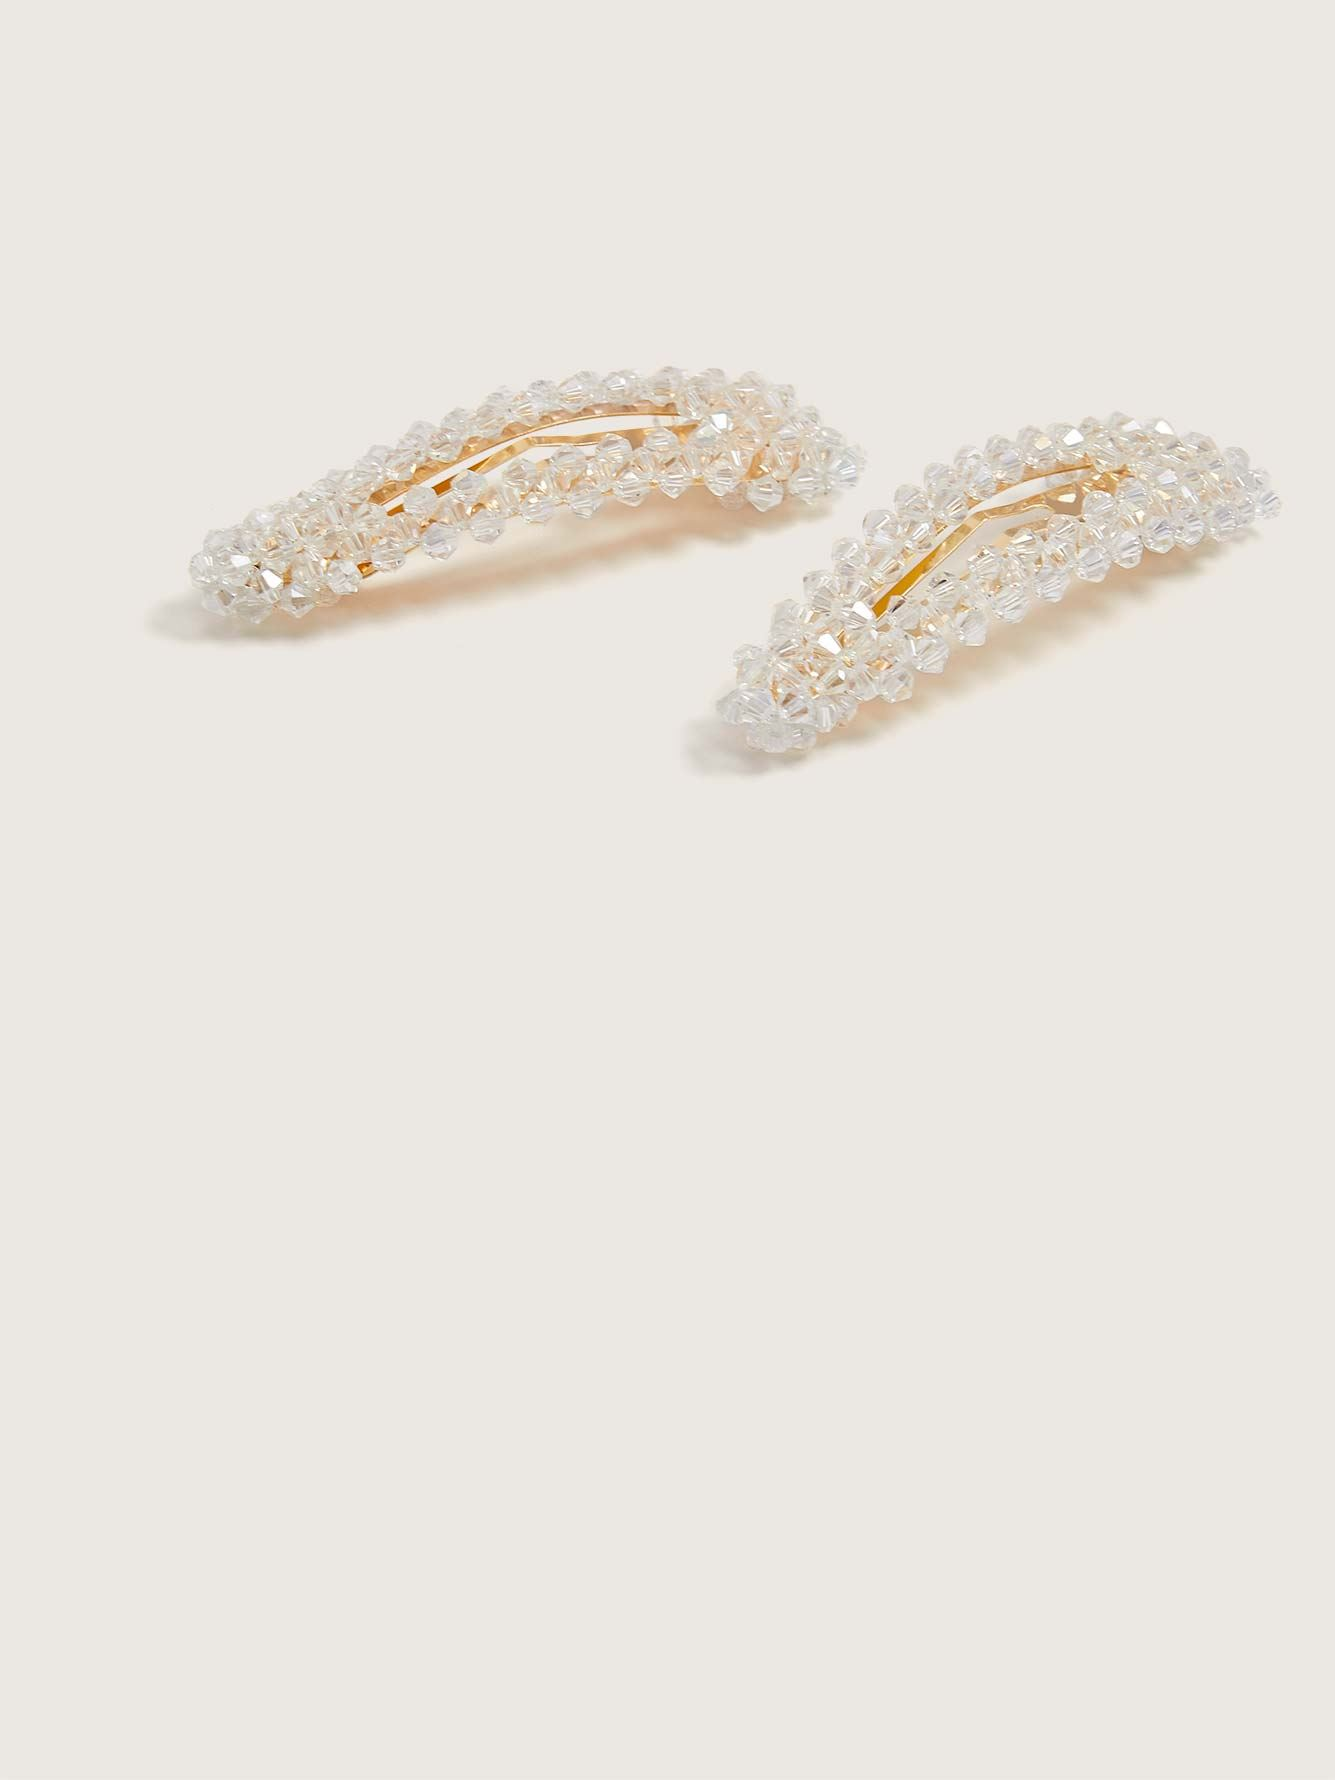 Hair Barrettes with Crystal Beads, Pack of 2 - Addition Elle